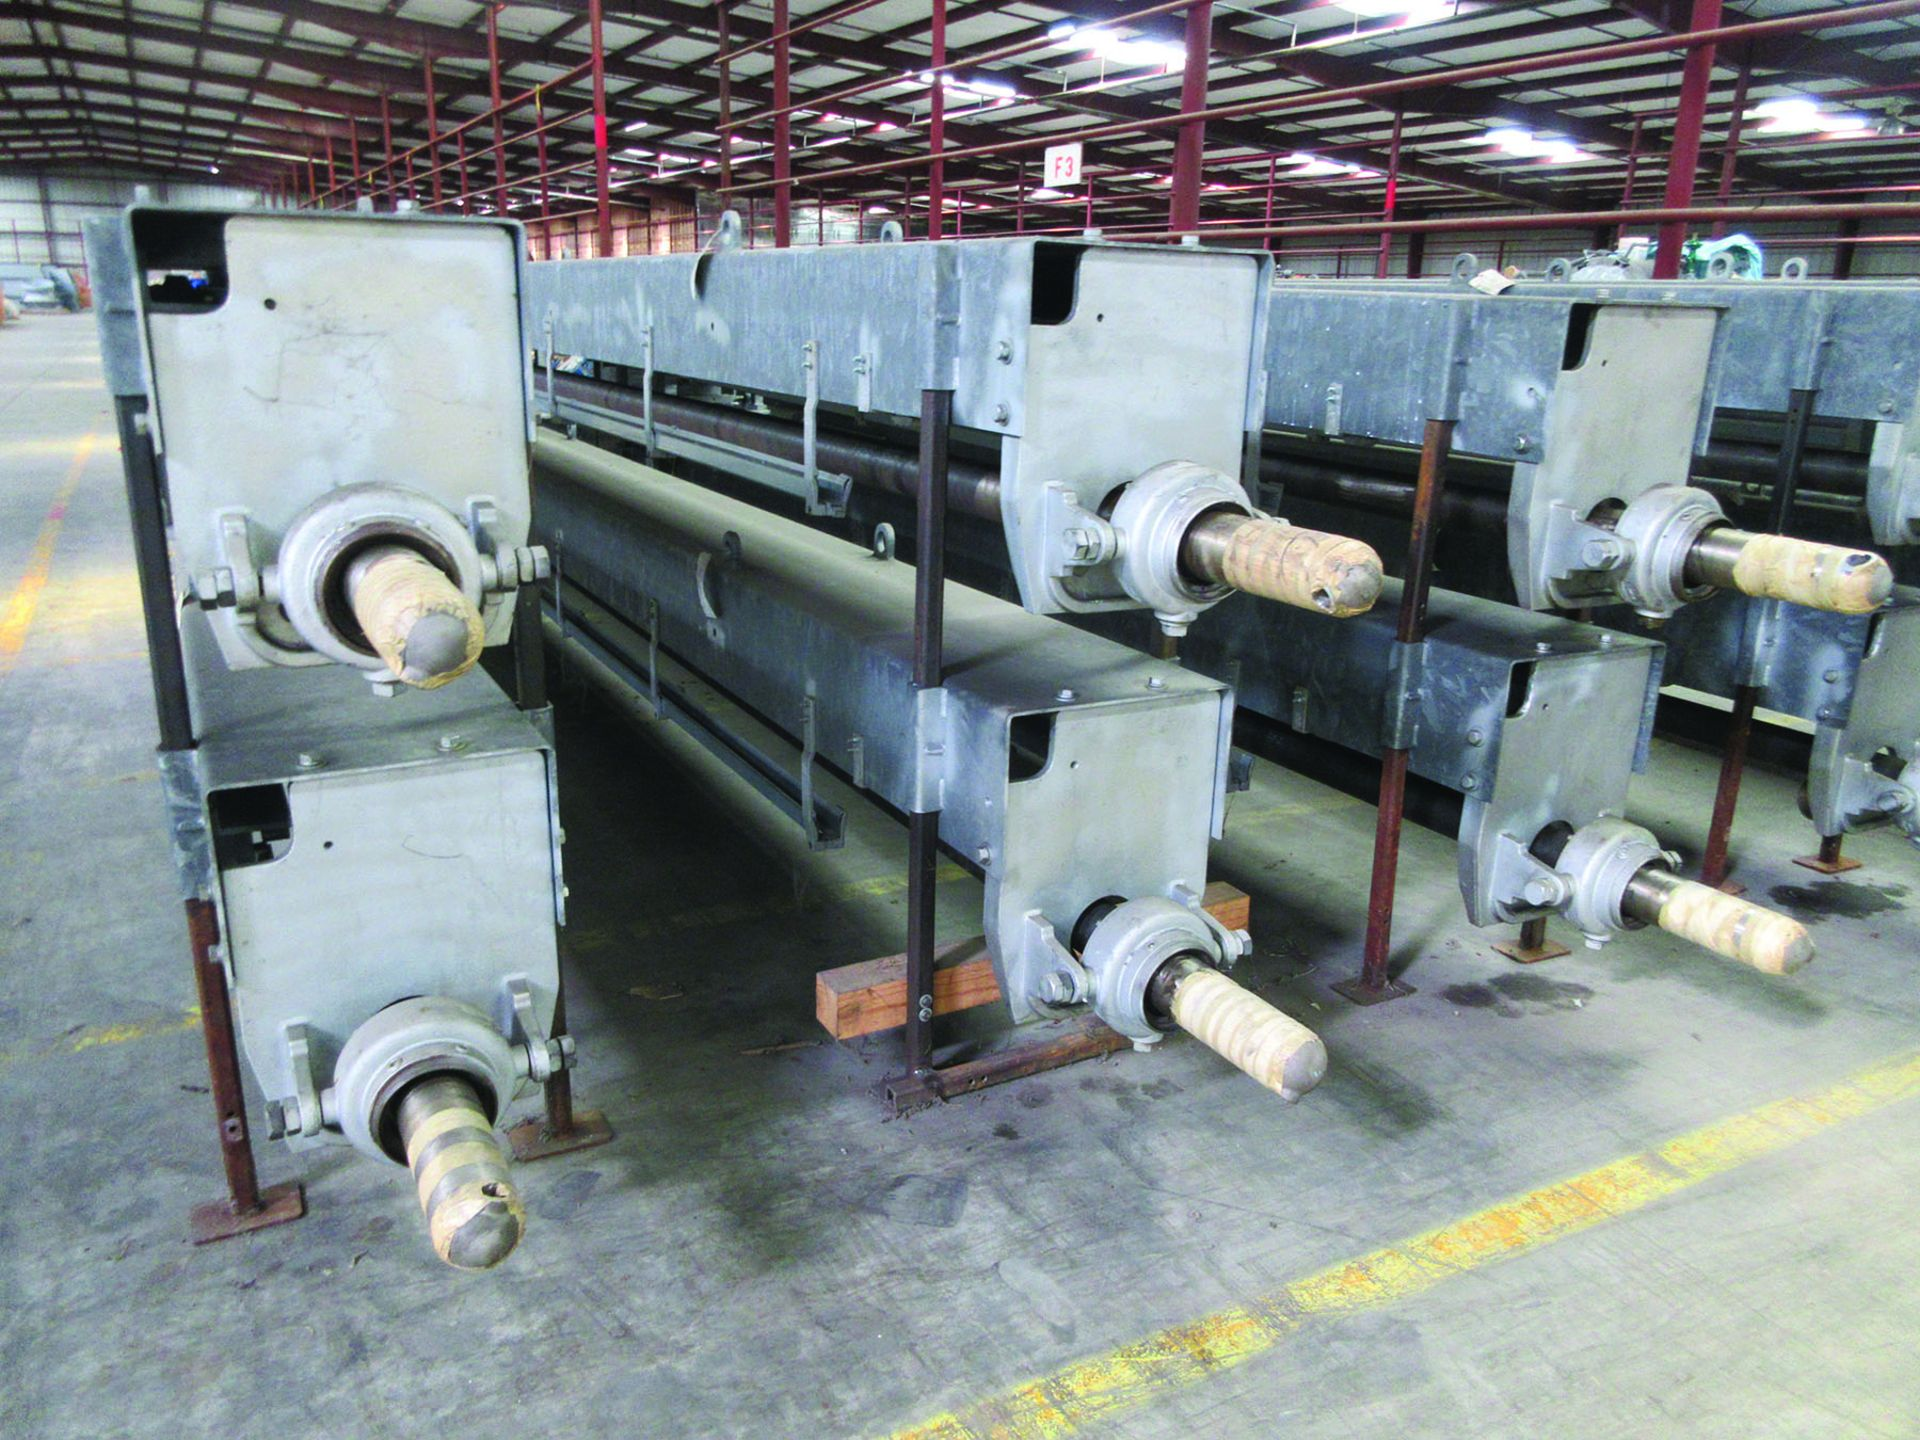 (6) CLYDE BERGEMANN SOOT BLOWERS, 3,579 LB. EACH, DIMENSIONS: 424'' X 30'' X 24'', GRID F3 - Image 3 of 3